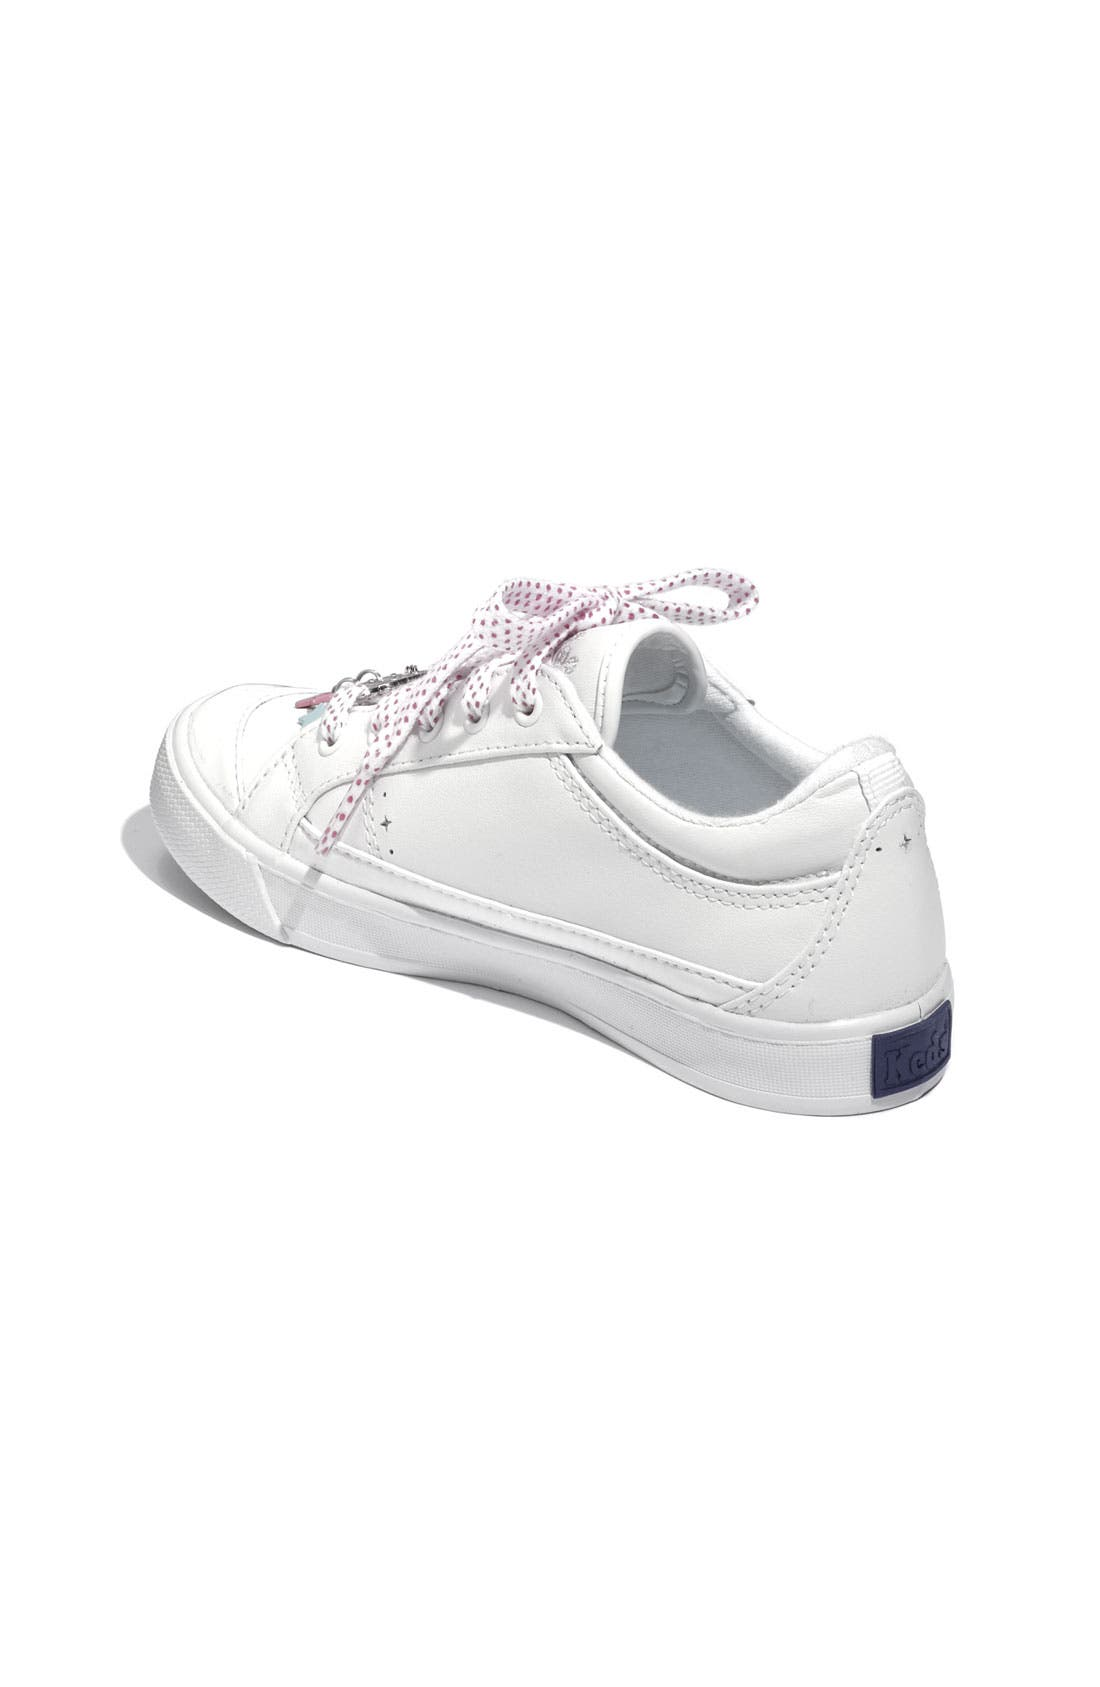 Alternate Image 2  - Keds® 'Taylor' Lace Sneaker (Toddler, Little Kid & Big Kid)